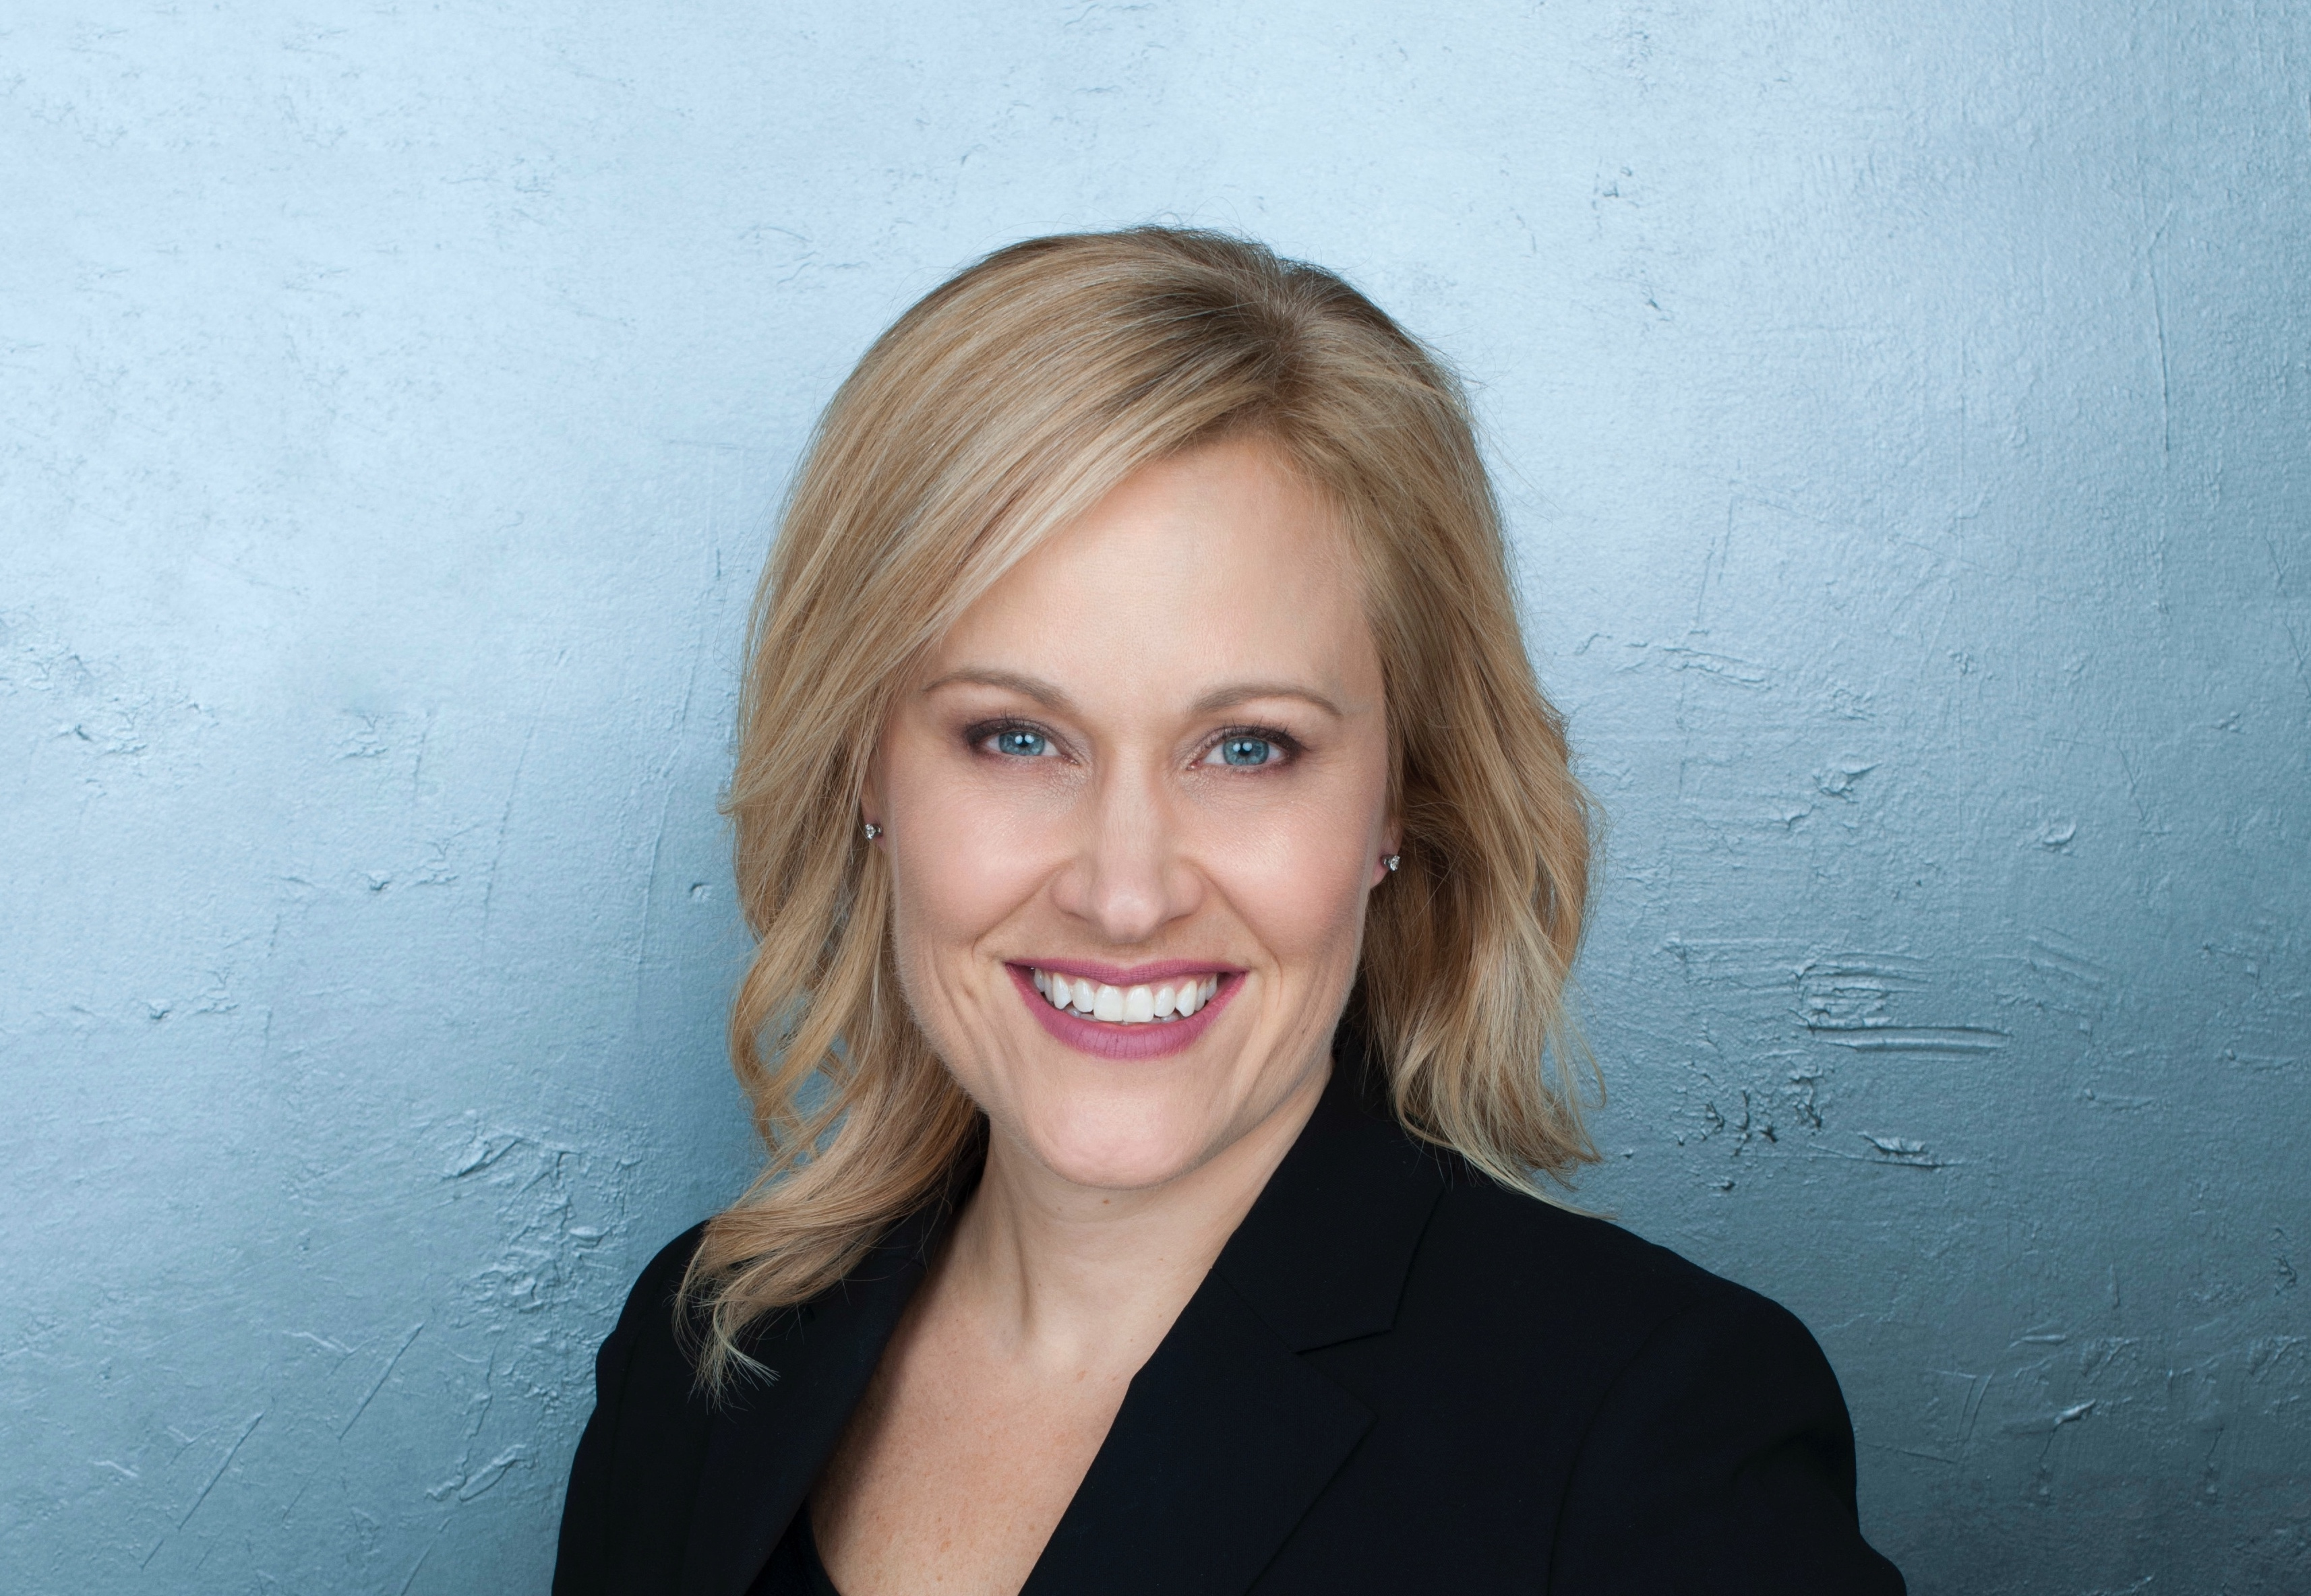 Jill Nykoliation Chats With Adforum for International Women's Day